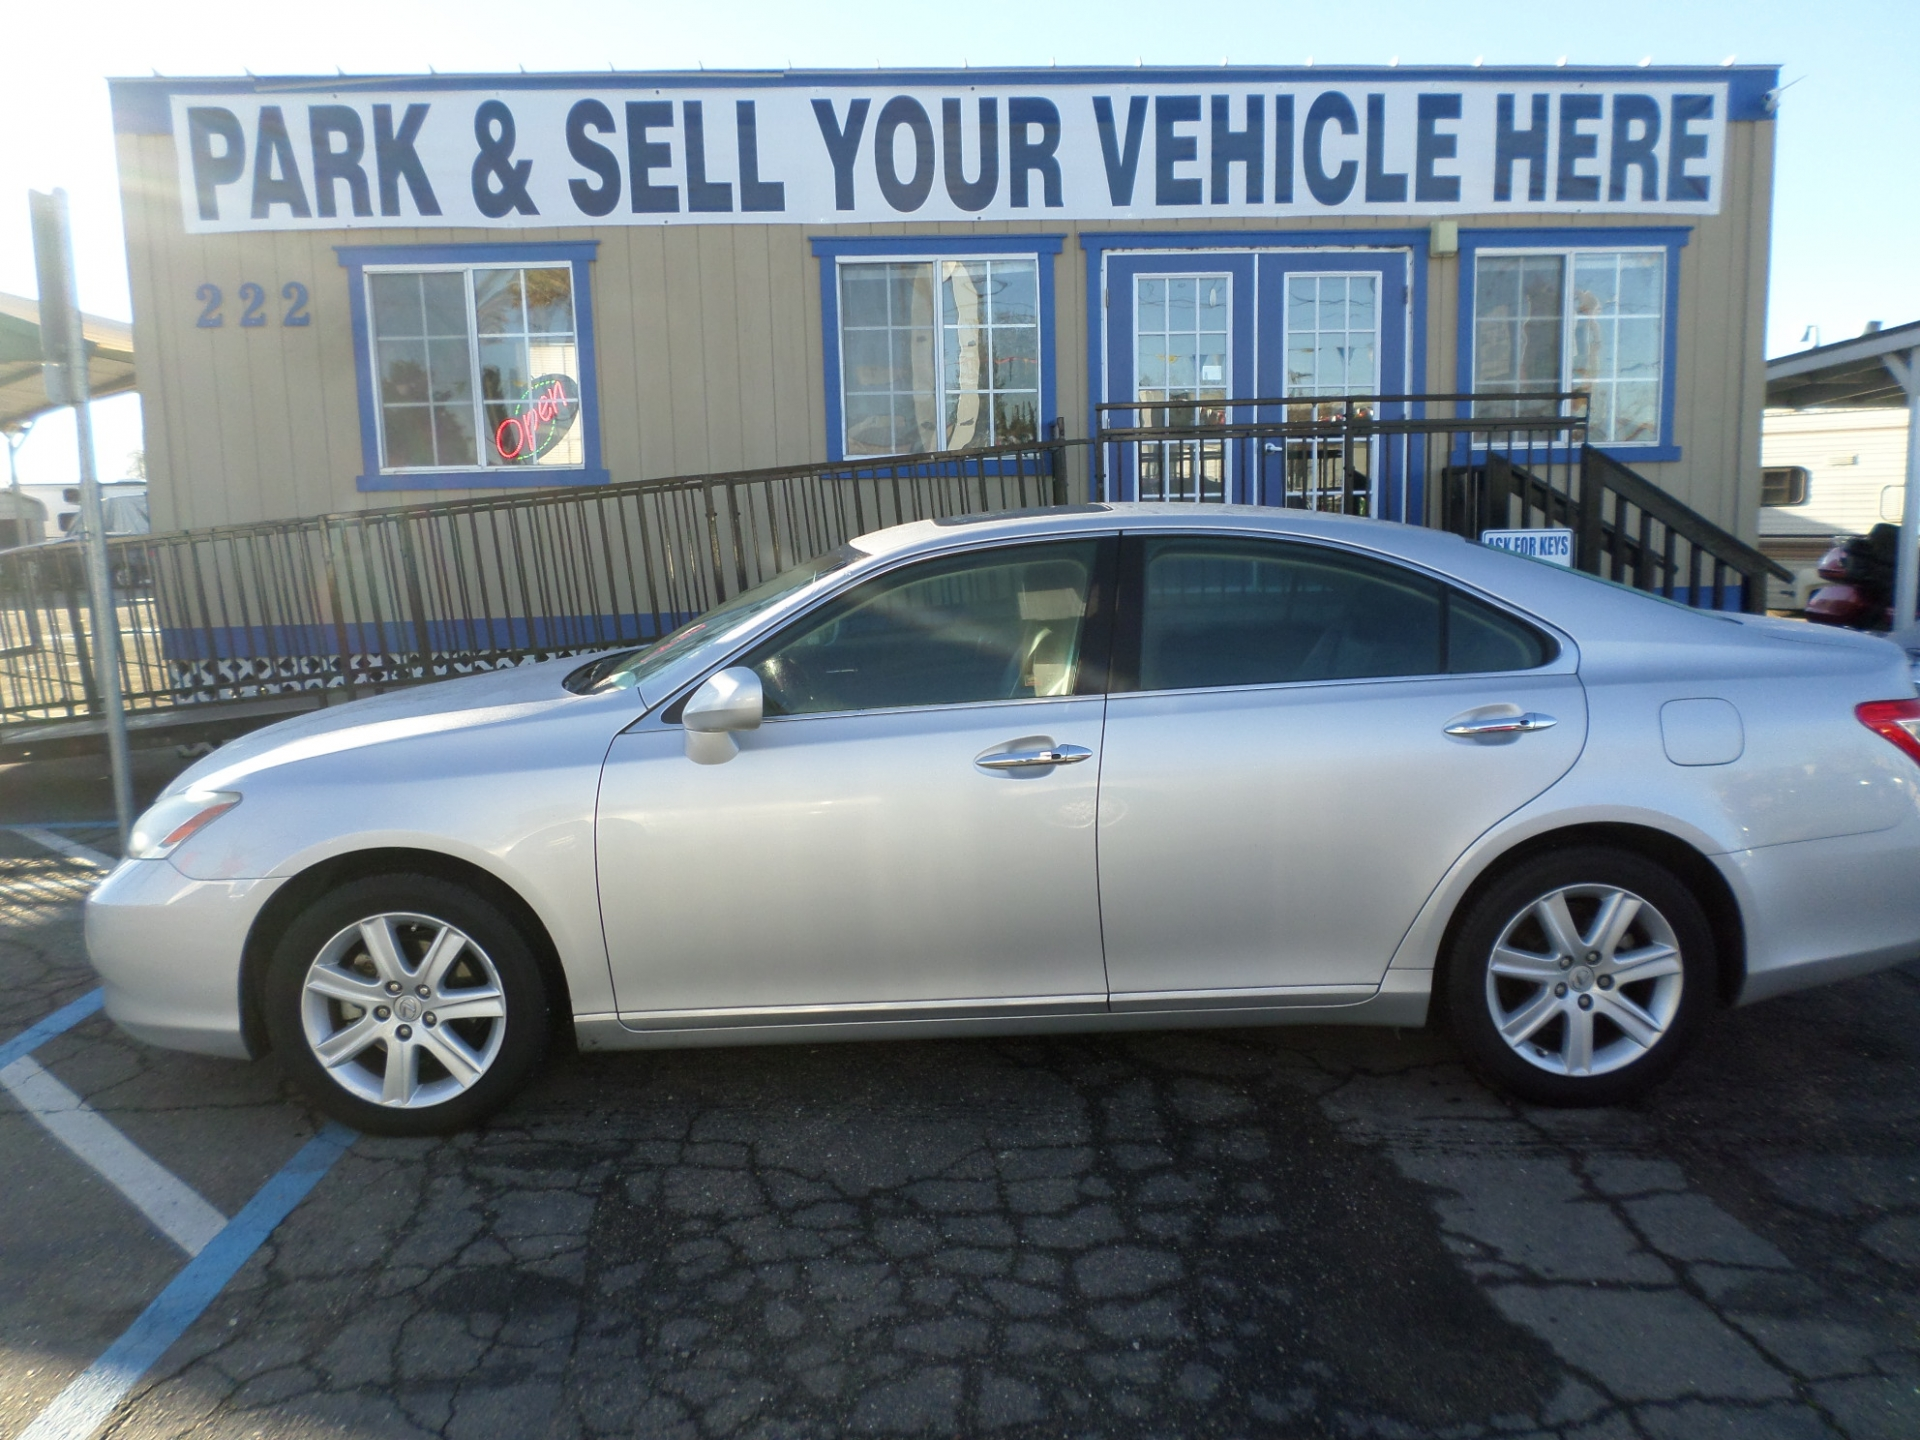 Car for sale: 2008 Lexus E 350 in Lodi Stockton CA - Lodi